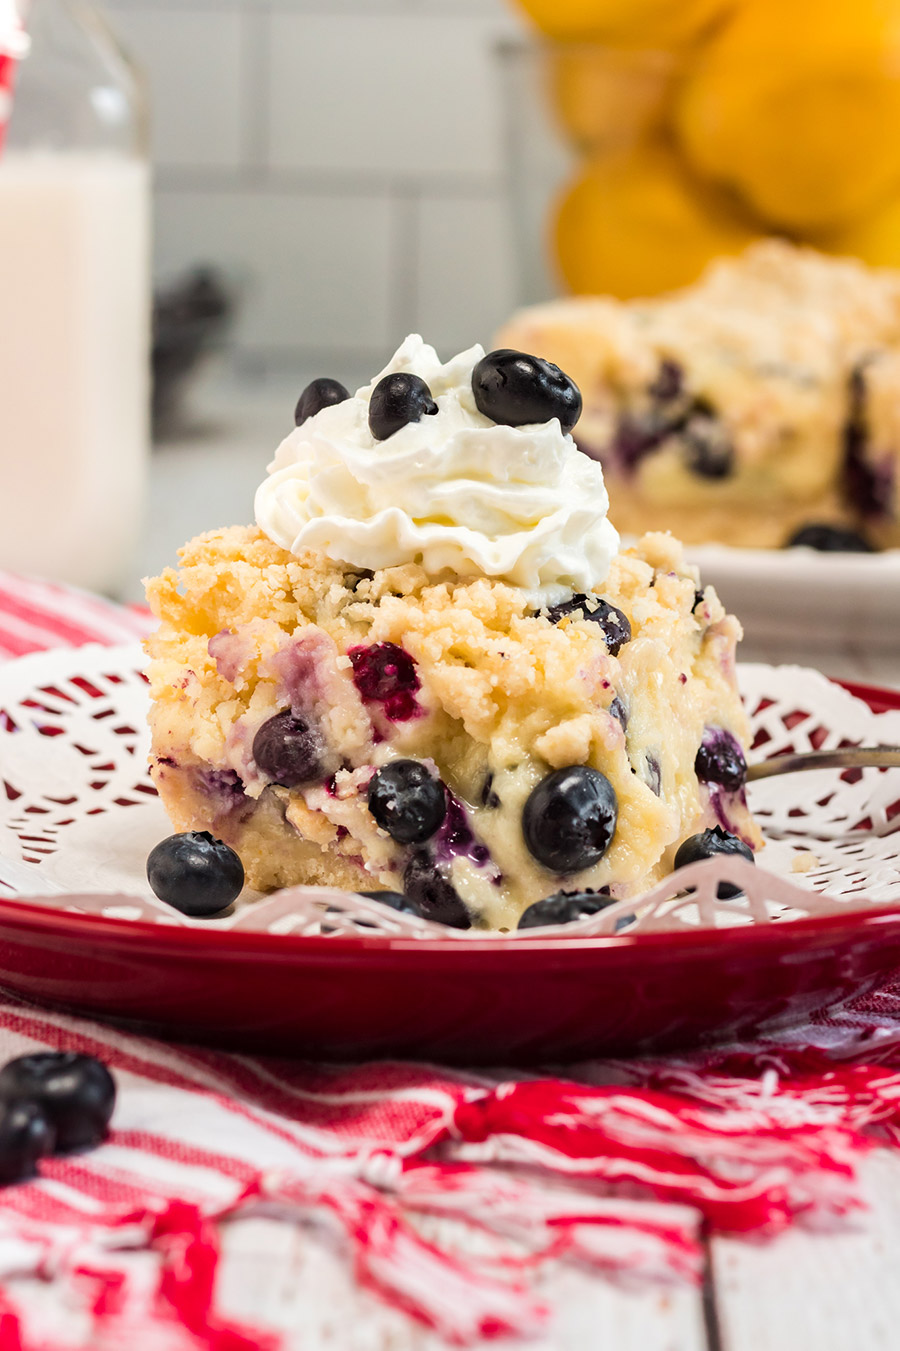 a slice of blueberry cake with whipped cream on a plate.